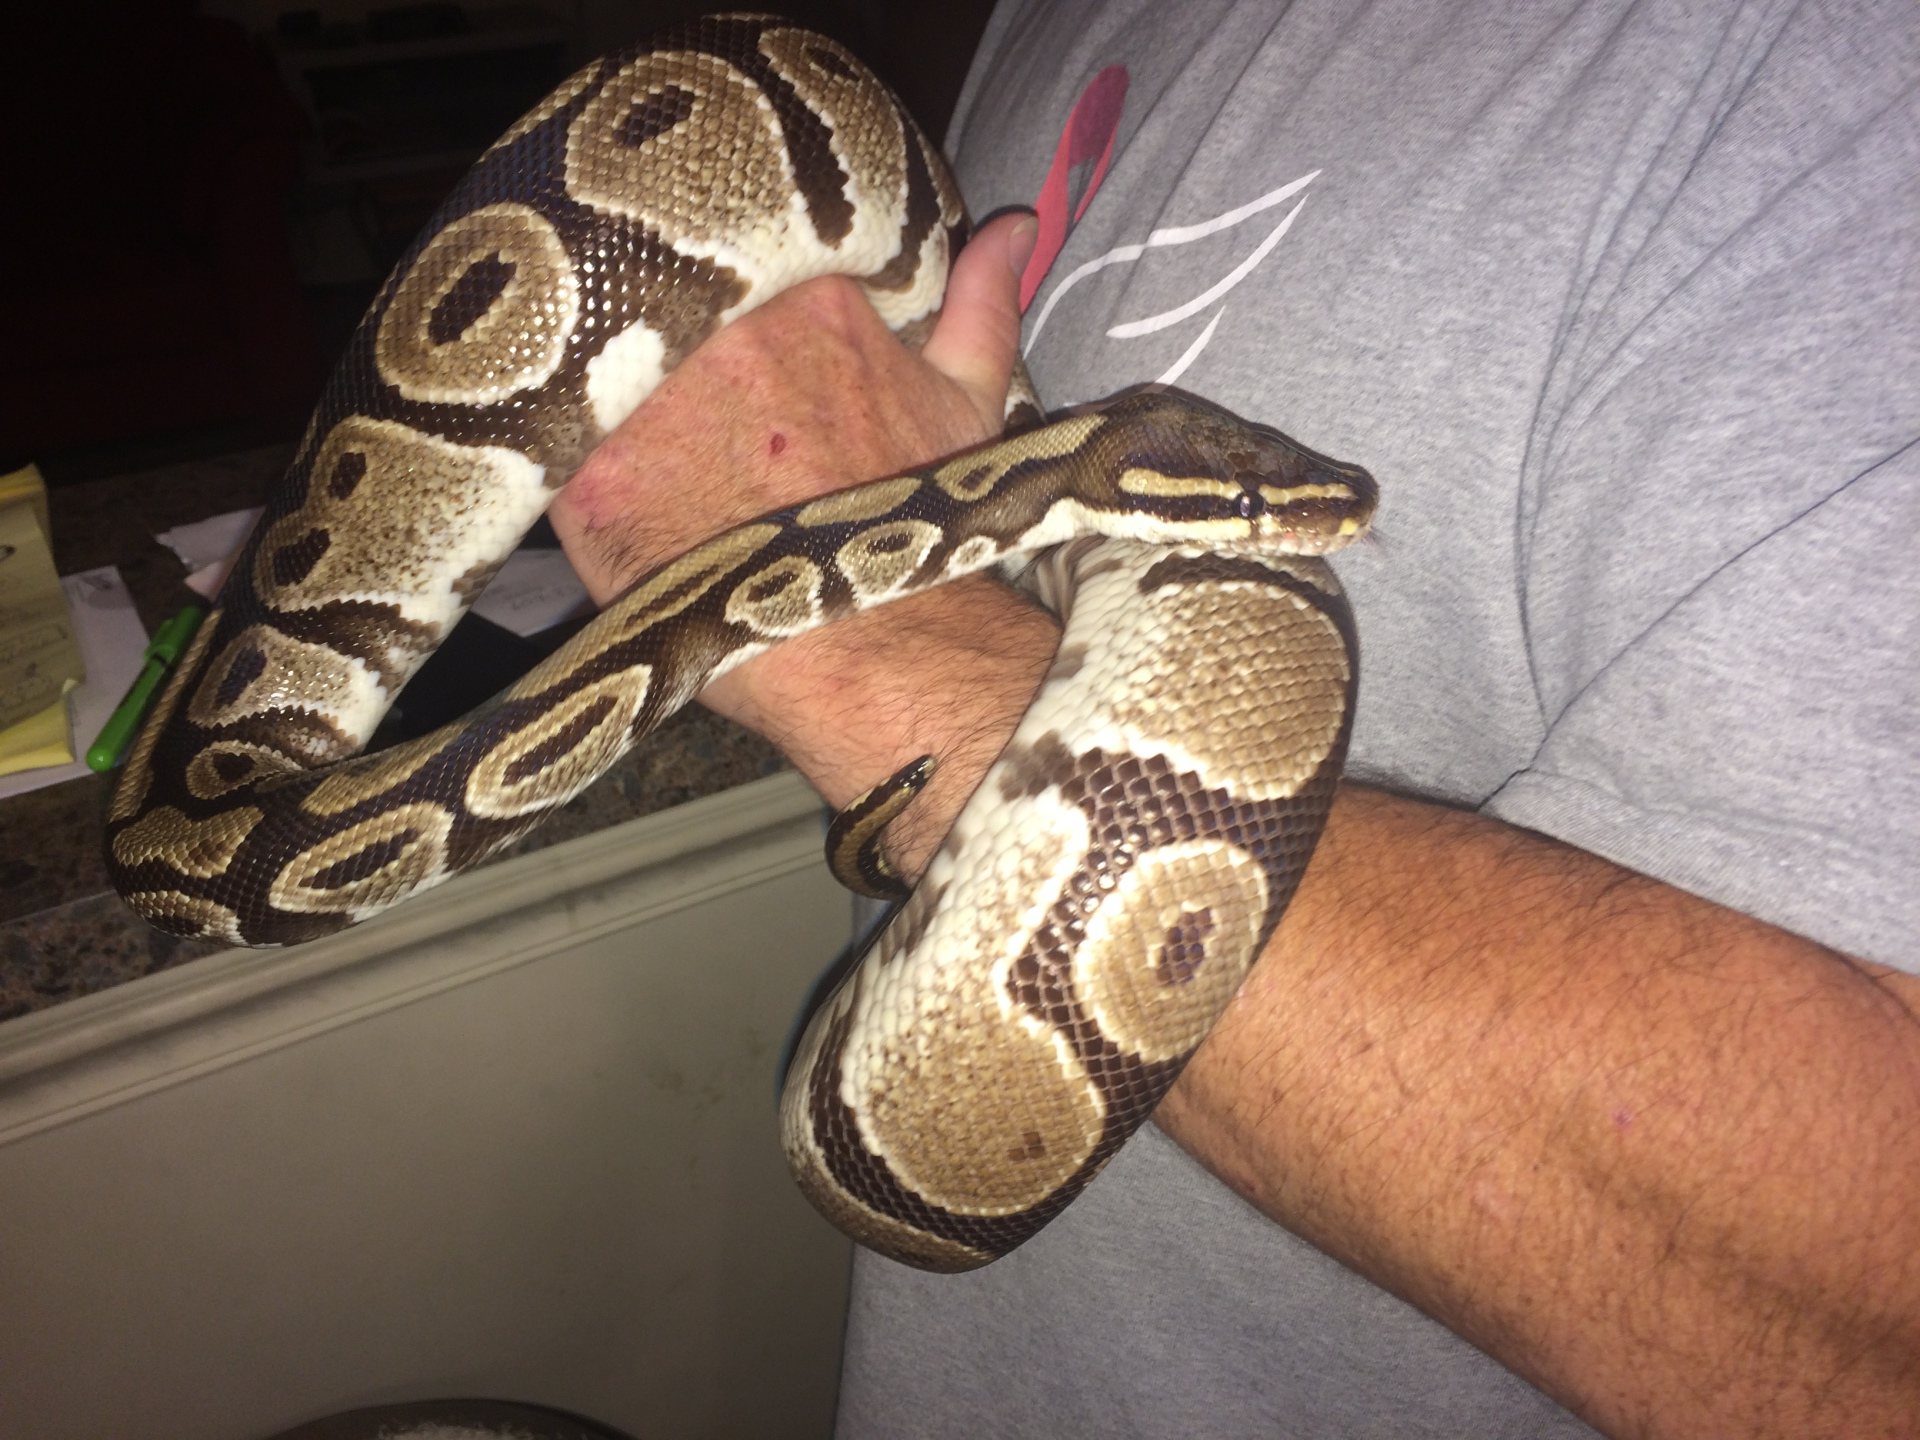 Adopted 6 Dec. Hampton Roads Reptile Exp